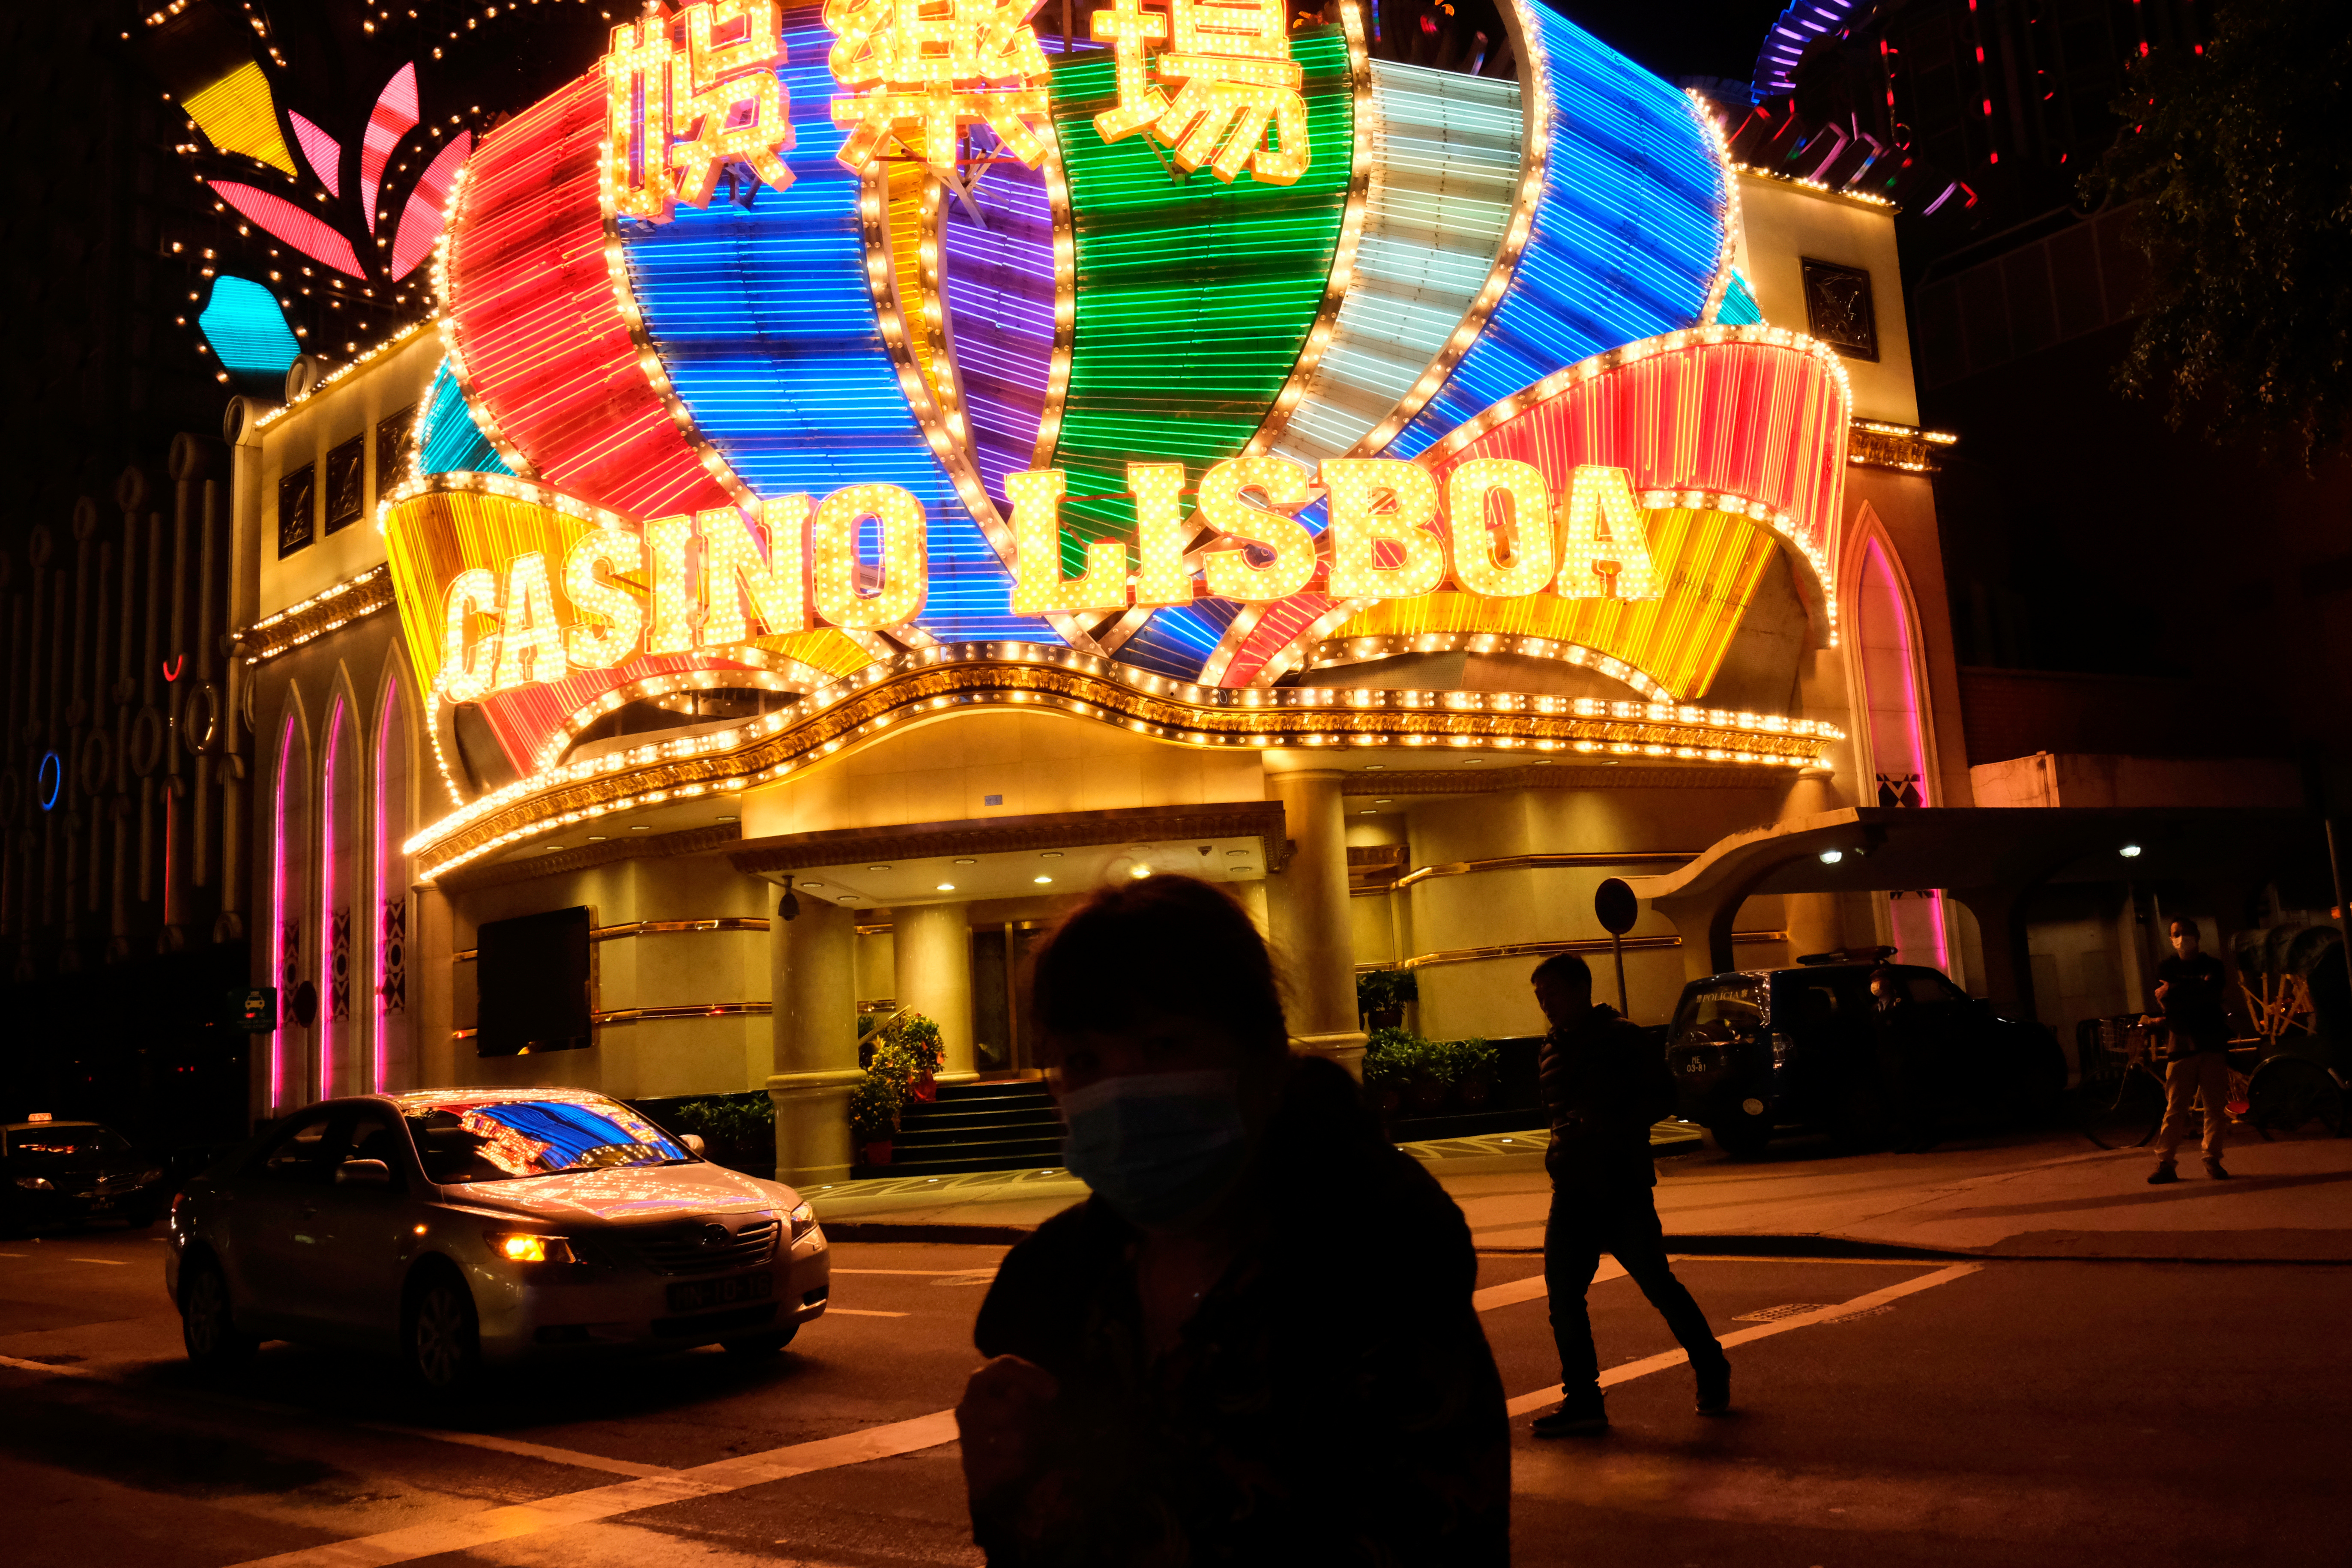 People wearing masks walk in front of Casino Lisboa, before its temporary closing, following the coronavirus outbreak in Macau, China February 4, 2020. REUTERS/Tyrone Siu